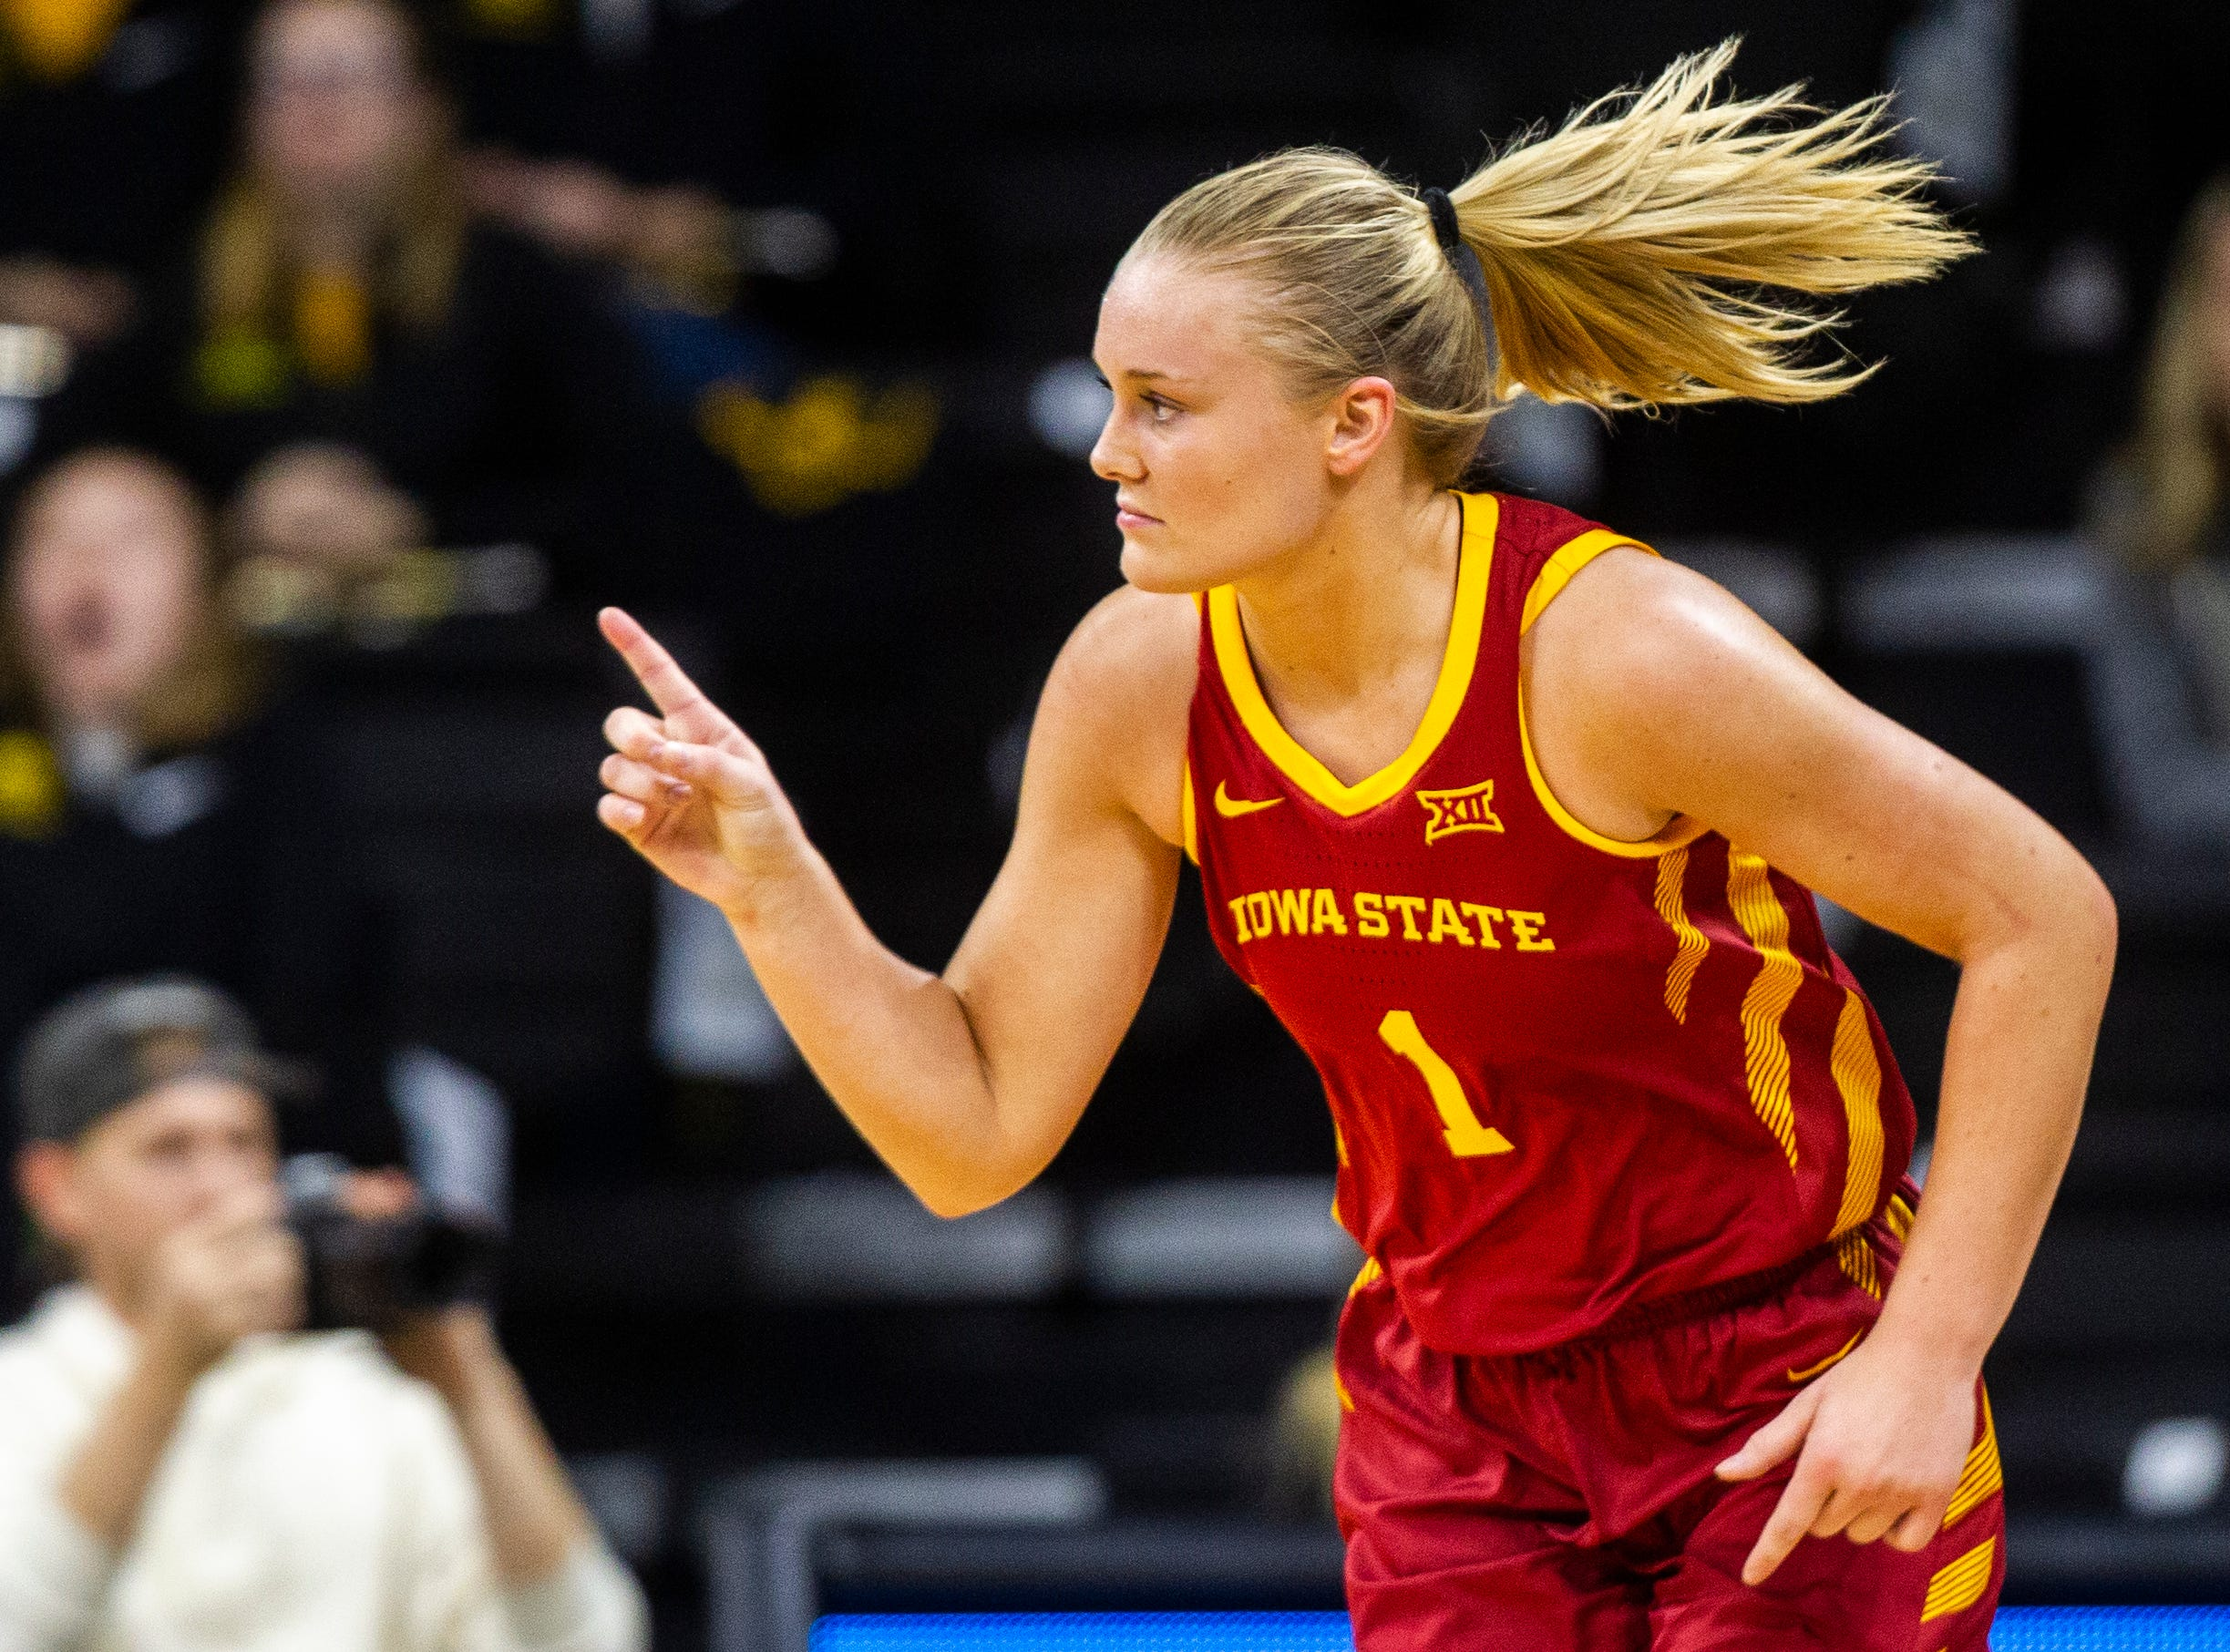 Iowa State forward Madison Wise (1) celebrates after making a 3-point basket during a Cy-Hawk series NCAA women's basketball game on Wednesday, Dec. 5, 2018, at Carver-Hawkeye Arena in Iowa City.